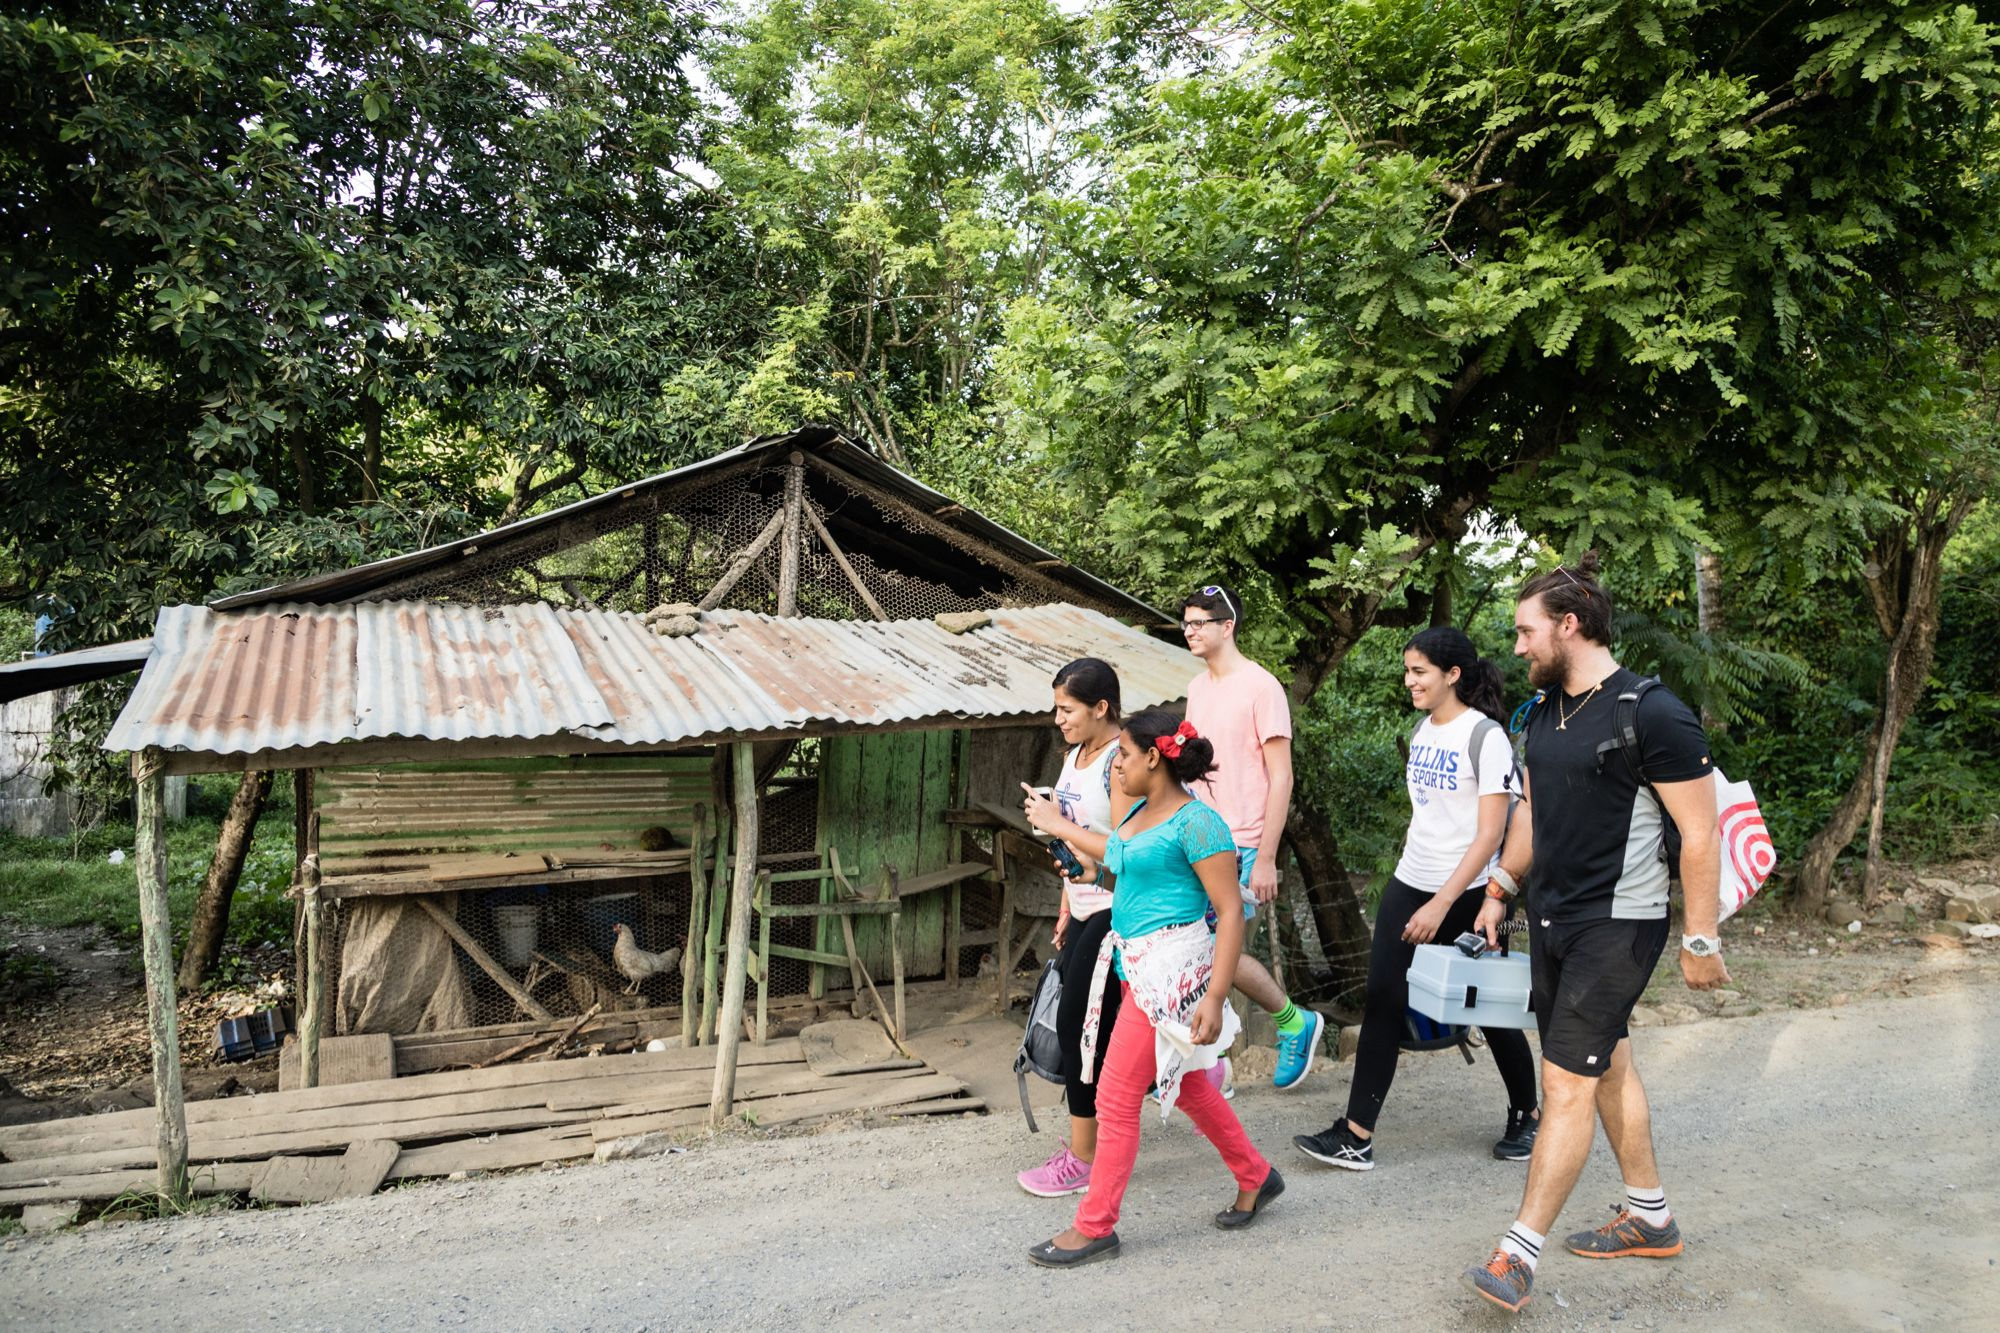 A group of students walk down a rural road during a study abroad experience in the Dominican Republic.